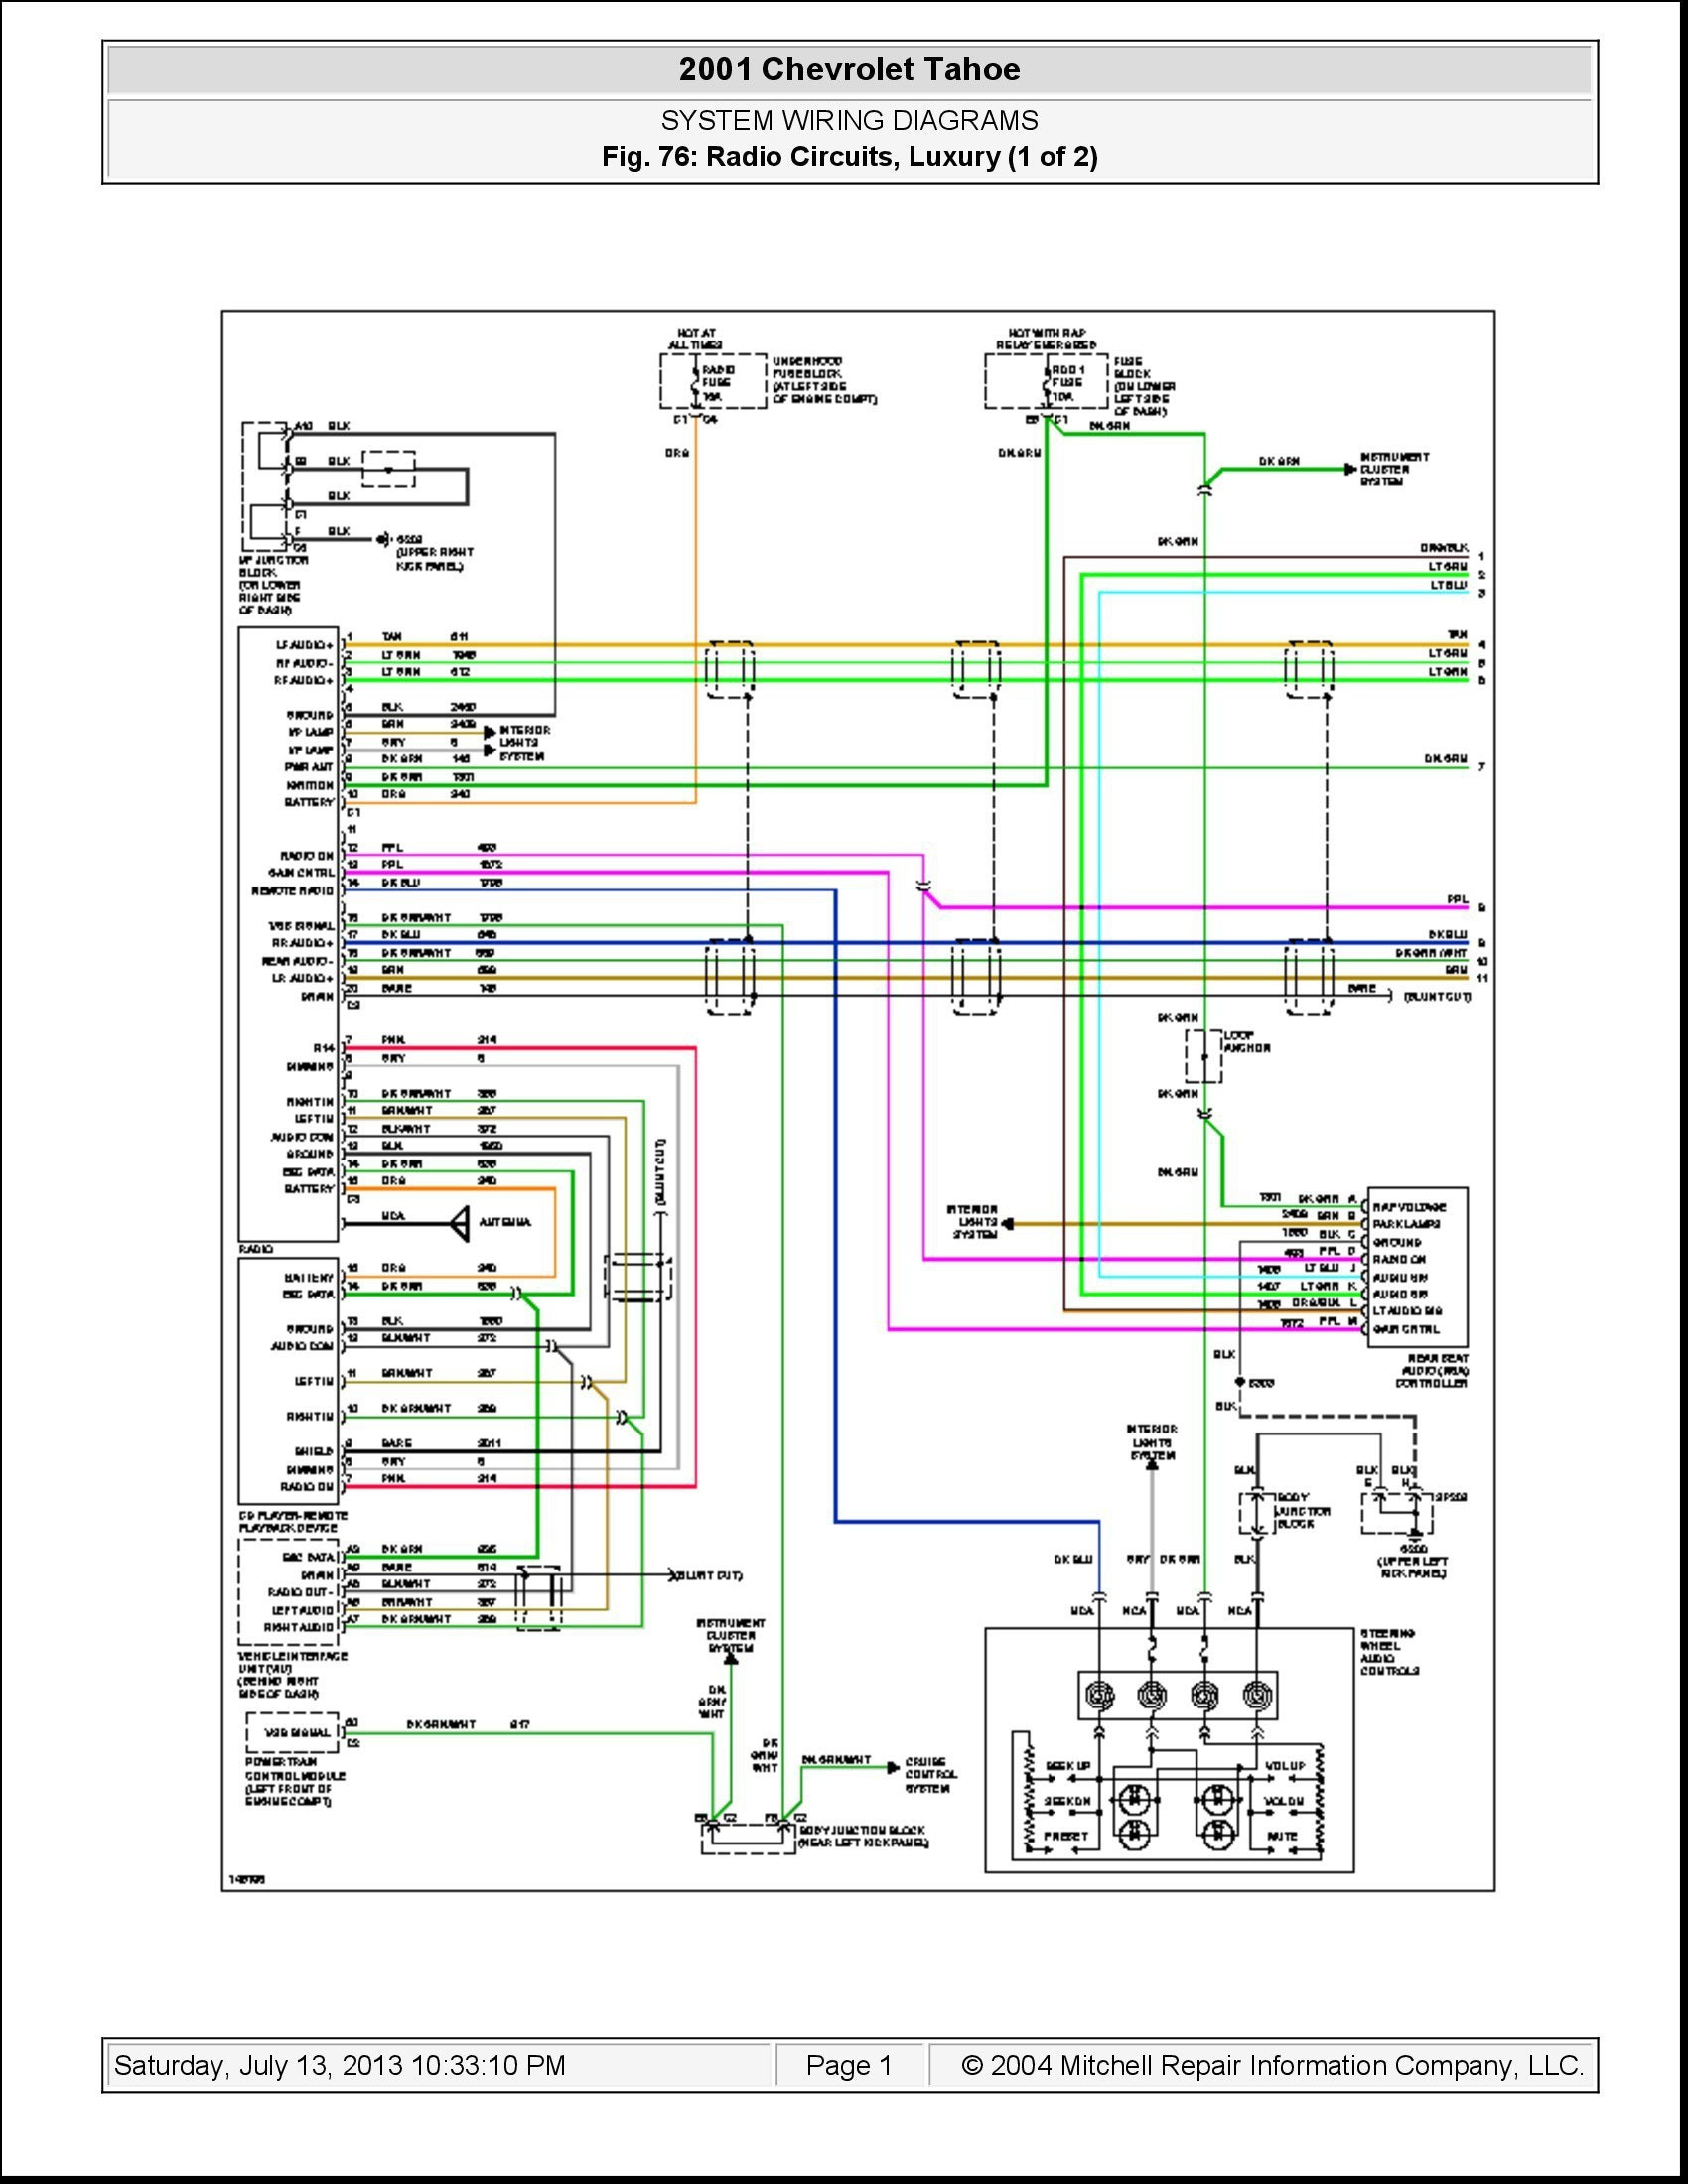 Chevy Wiring Harness Diagram from 2020cadillac.com